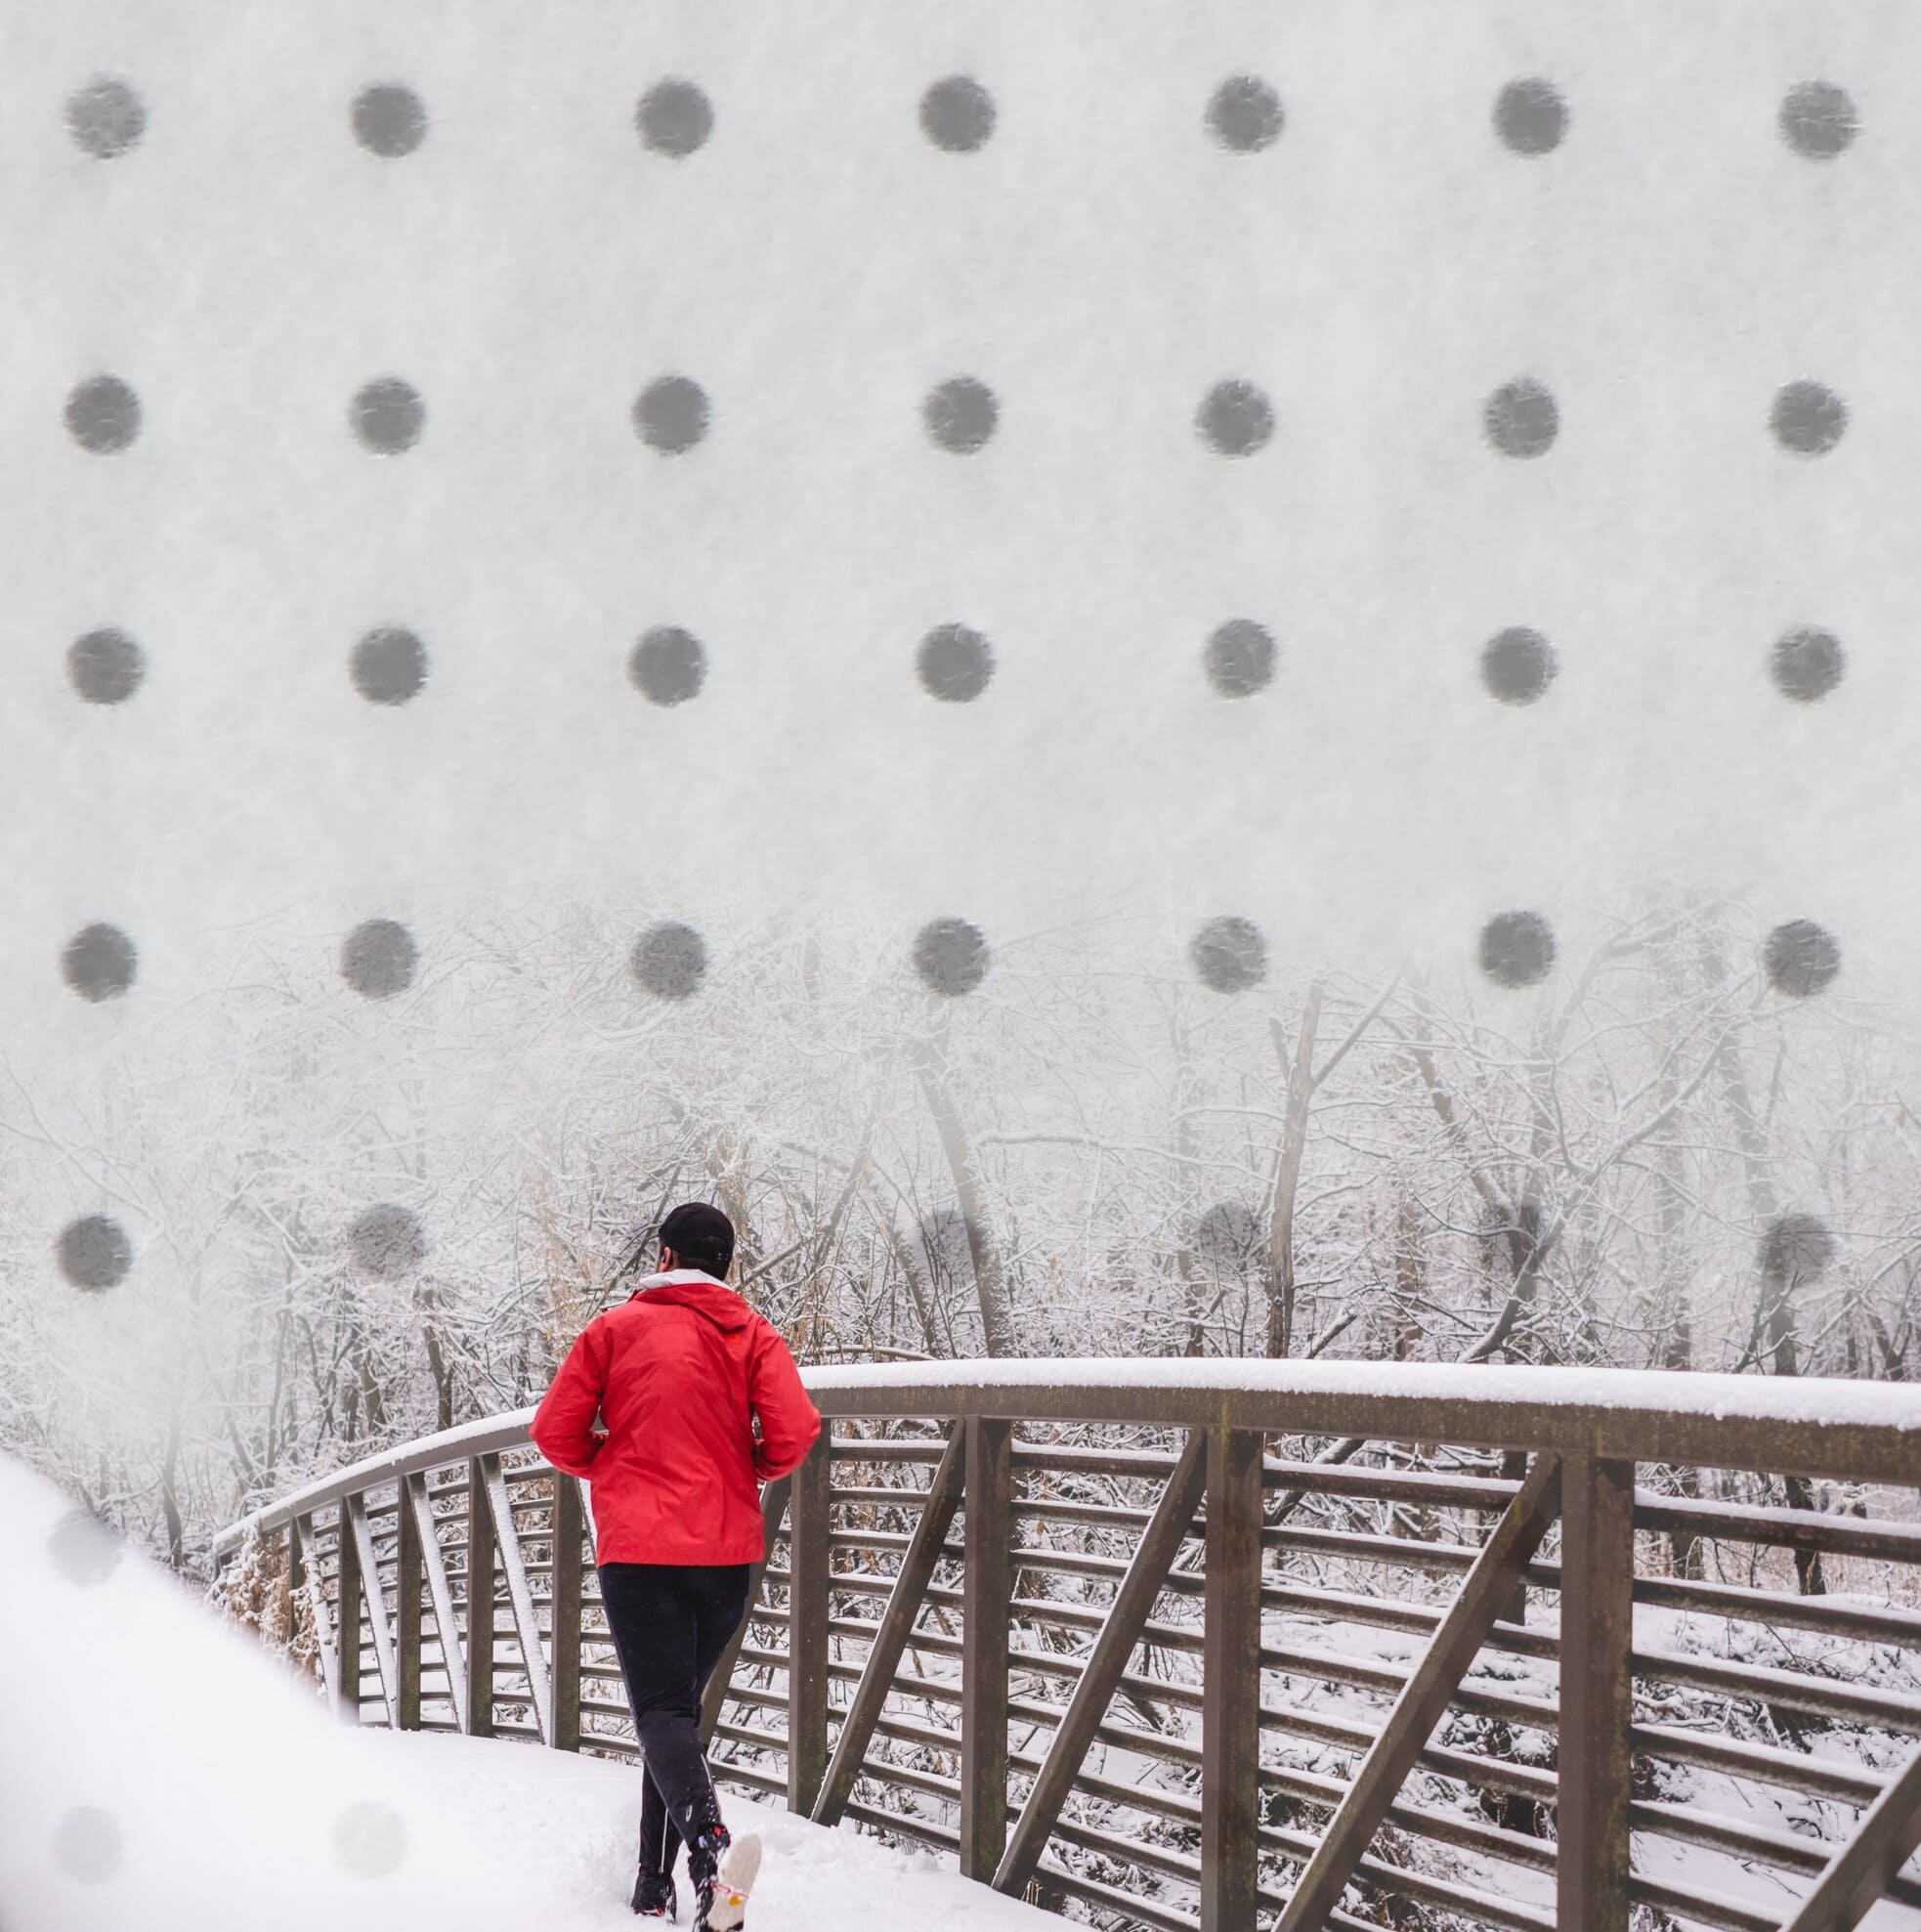 Vivo Performance: Teknica breathable insulation with holes man wearing red jacket running in snow